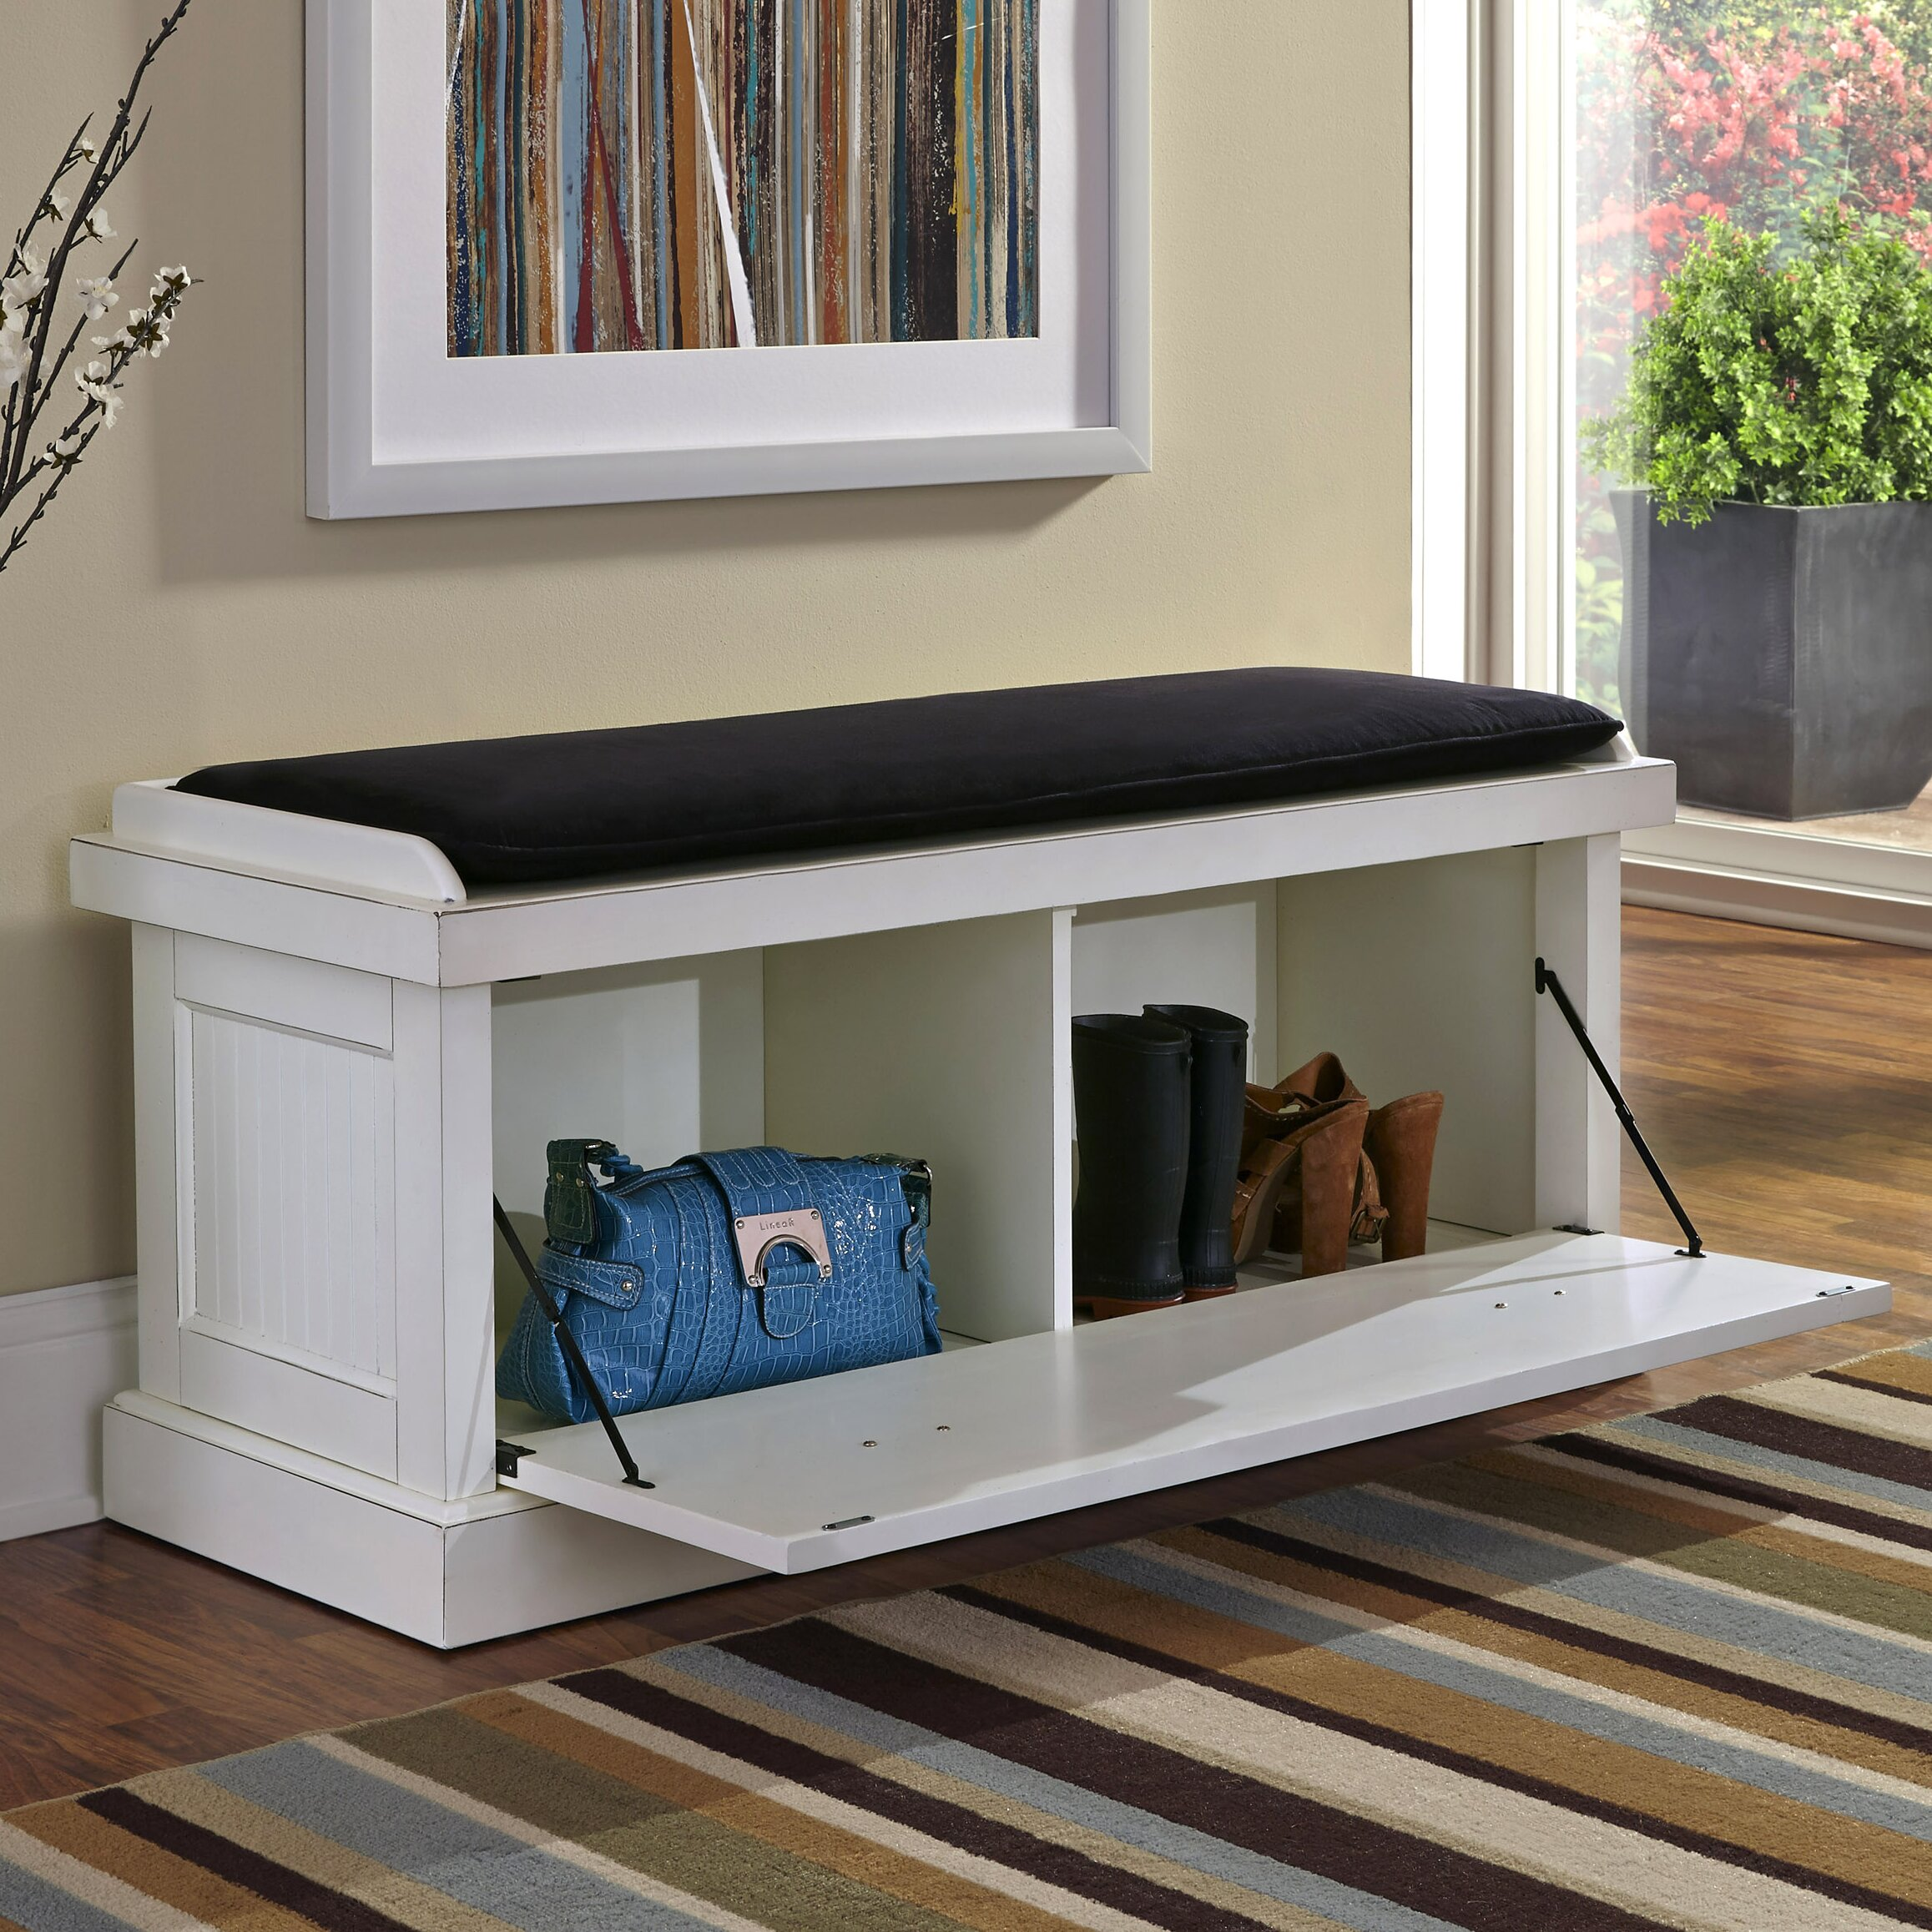 Foyer Mudroom Reviews : Breakwater bay gouldsboro upholstered entryway bench